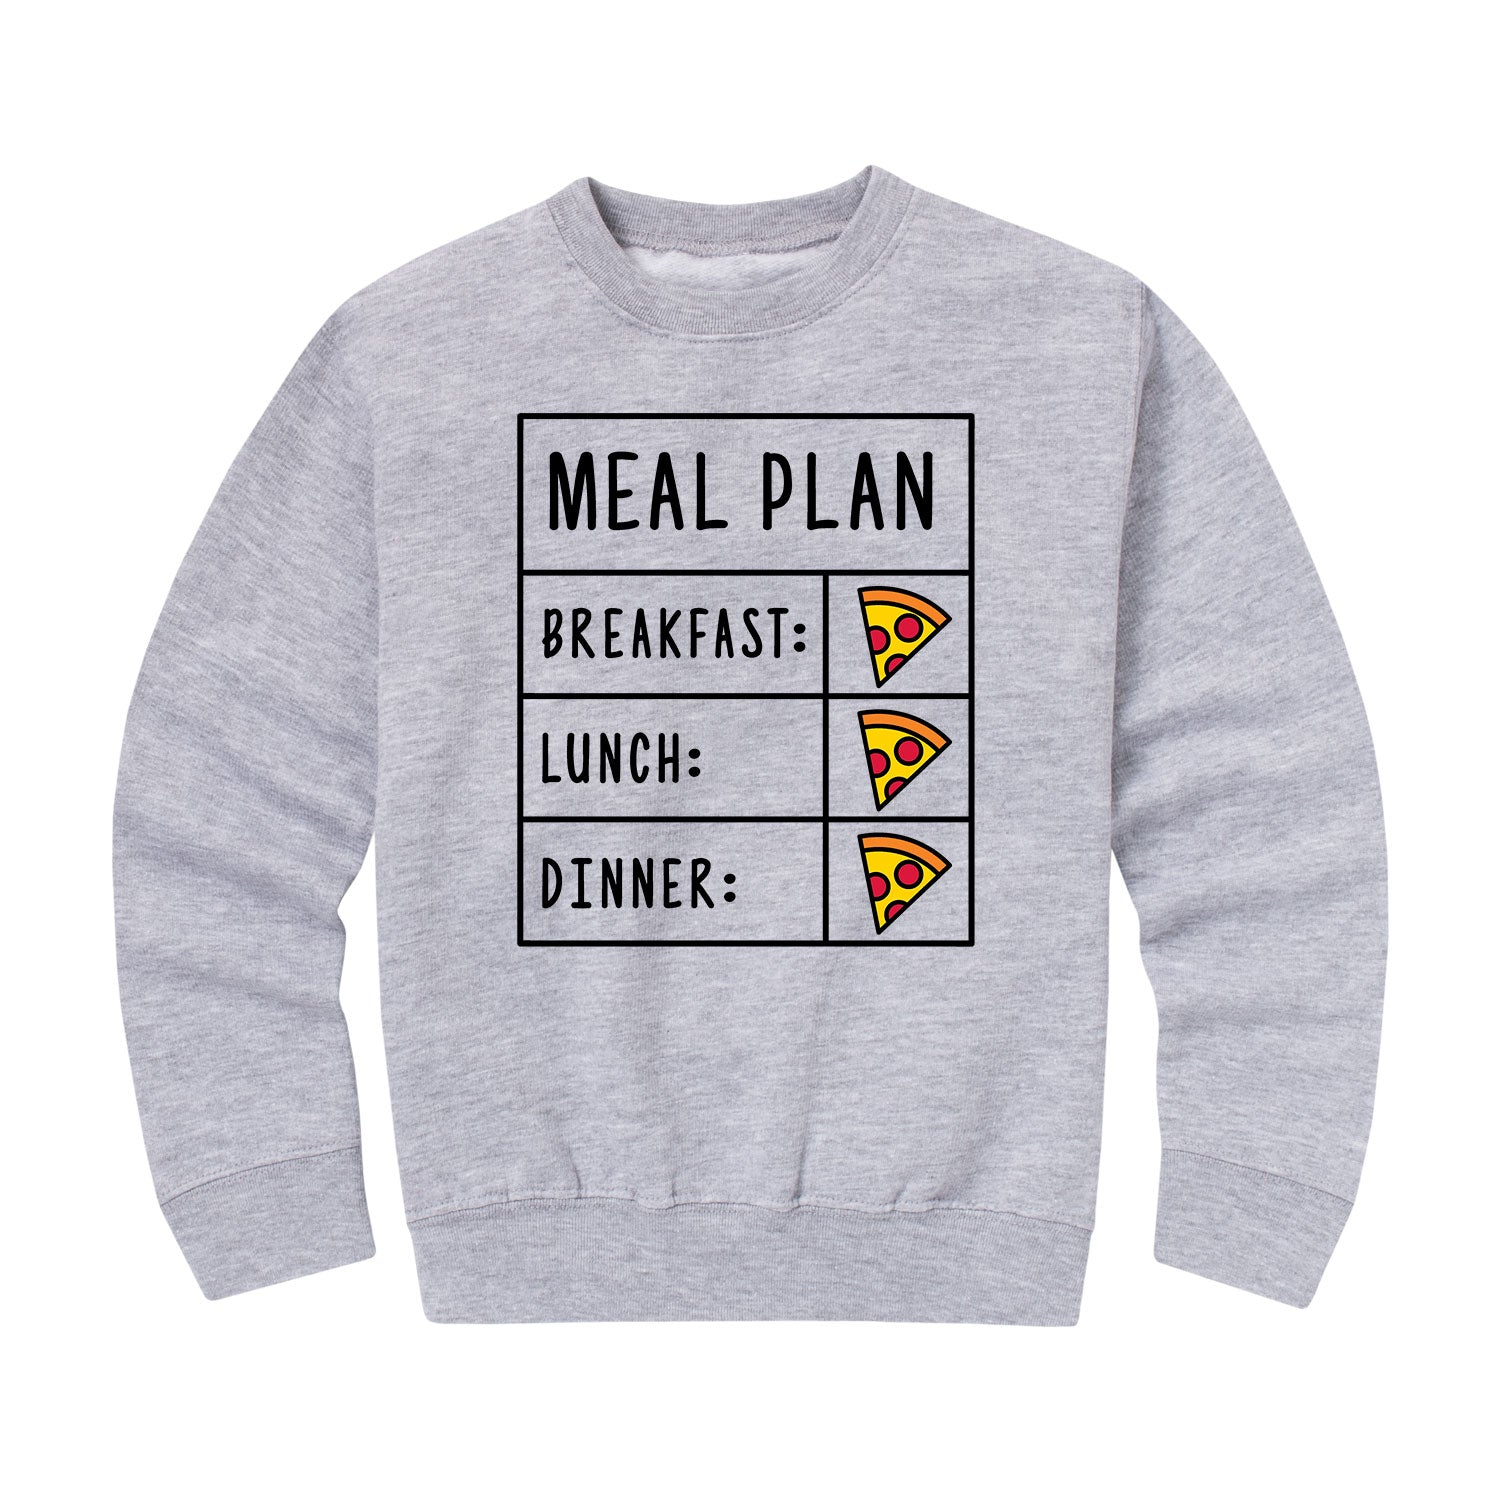 Pizza Meal Plan - Youth & Toddler Crew Neck Fleece